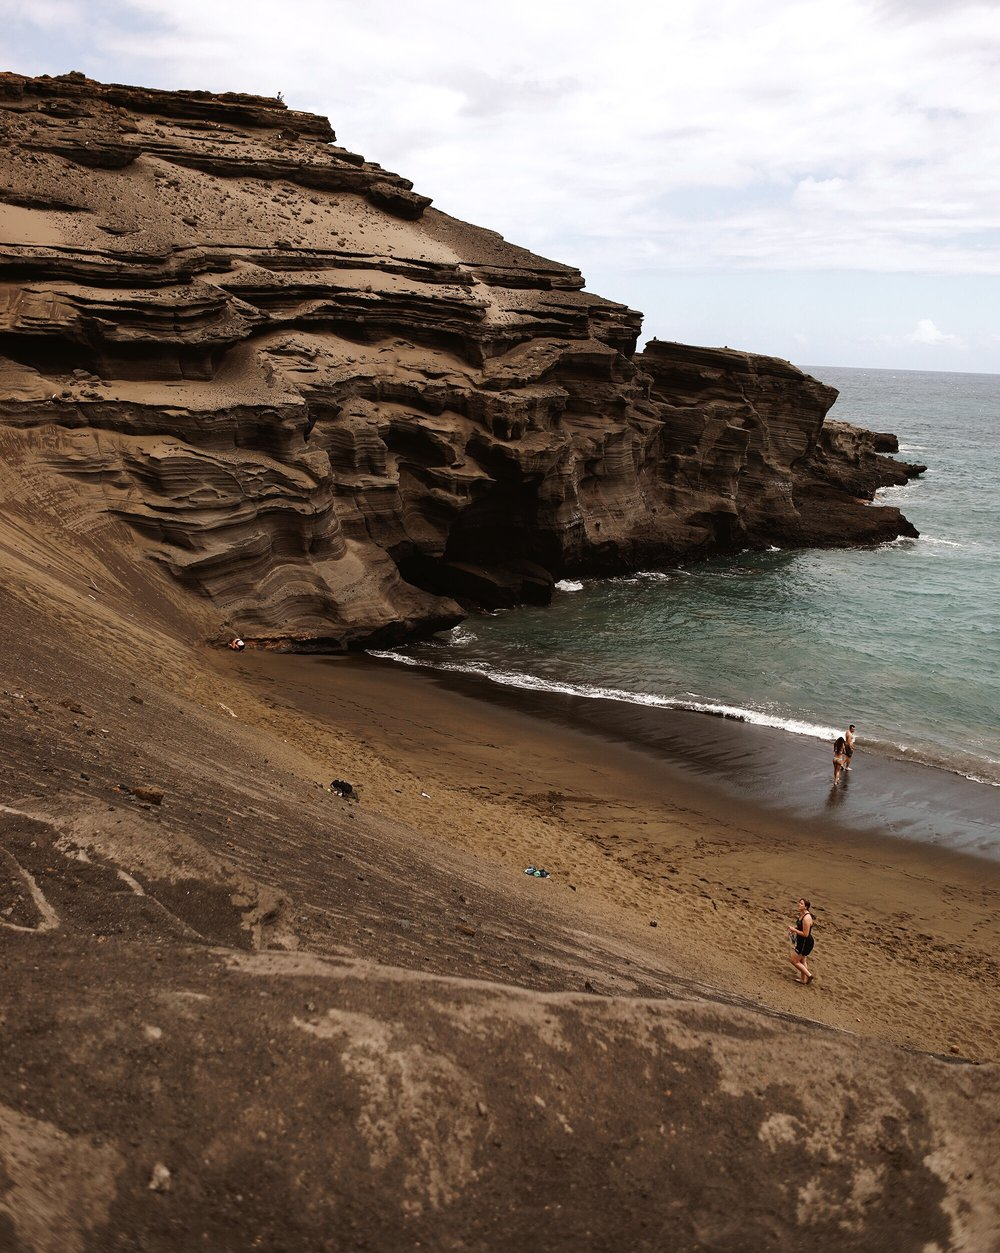 Papakōlea: The Green Sand Beach | Big Island, Hawaii | Travel Wanderlust Blog Hiking | And Away We Went